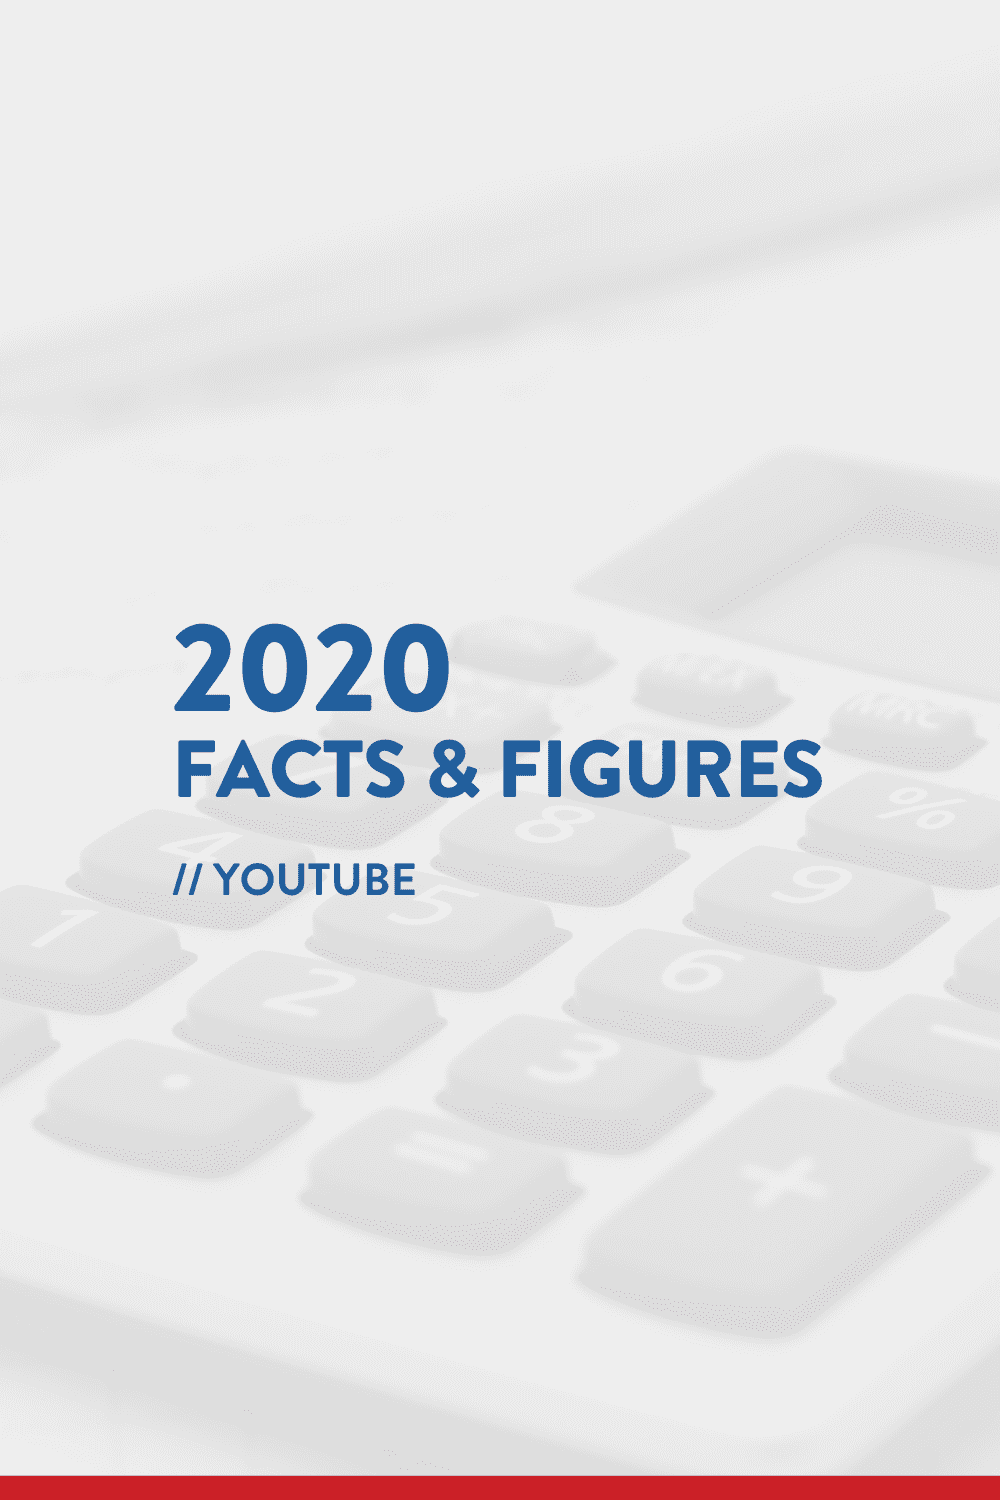 2020 Facts & Figures // YouTube Statistics